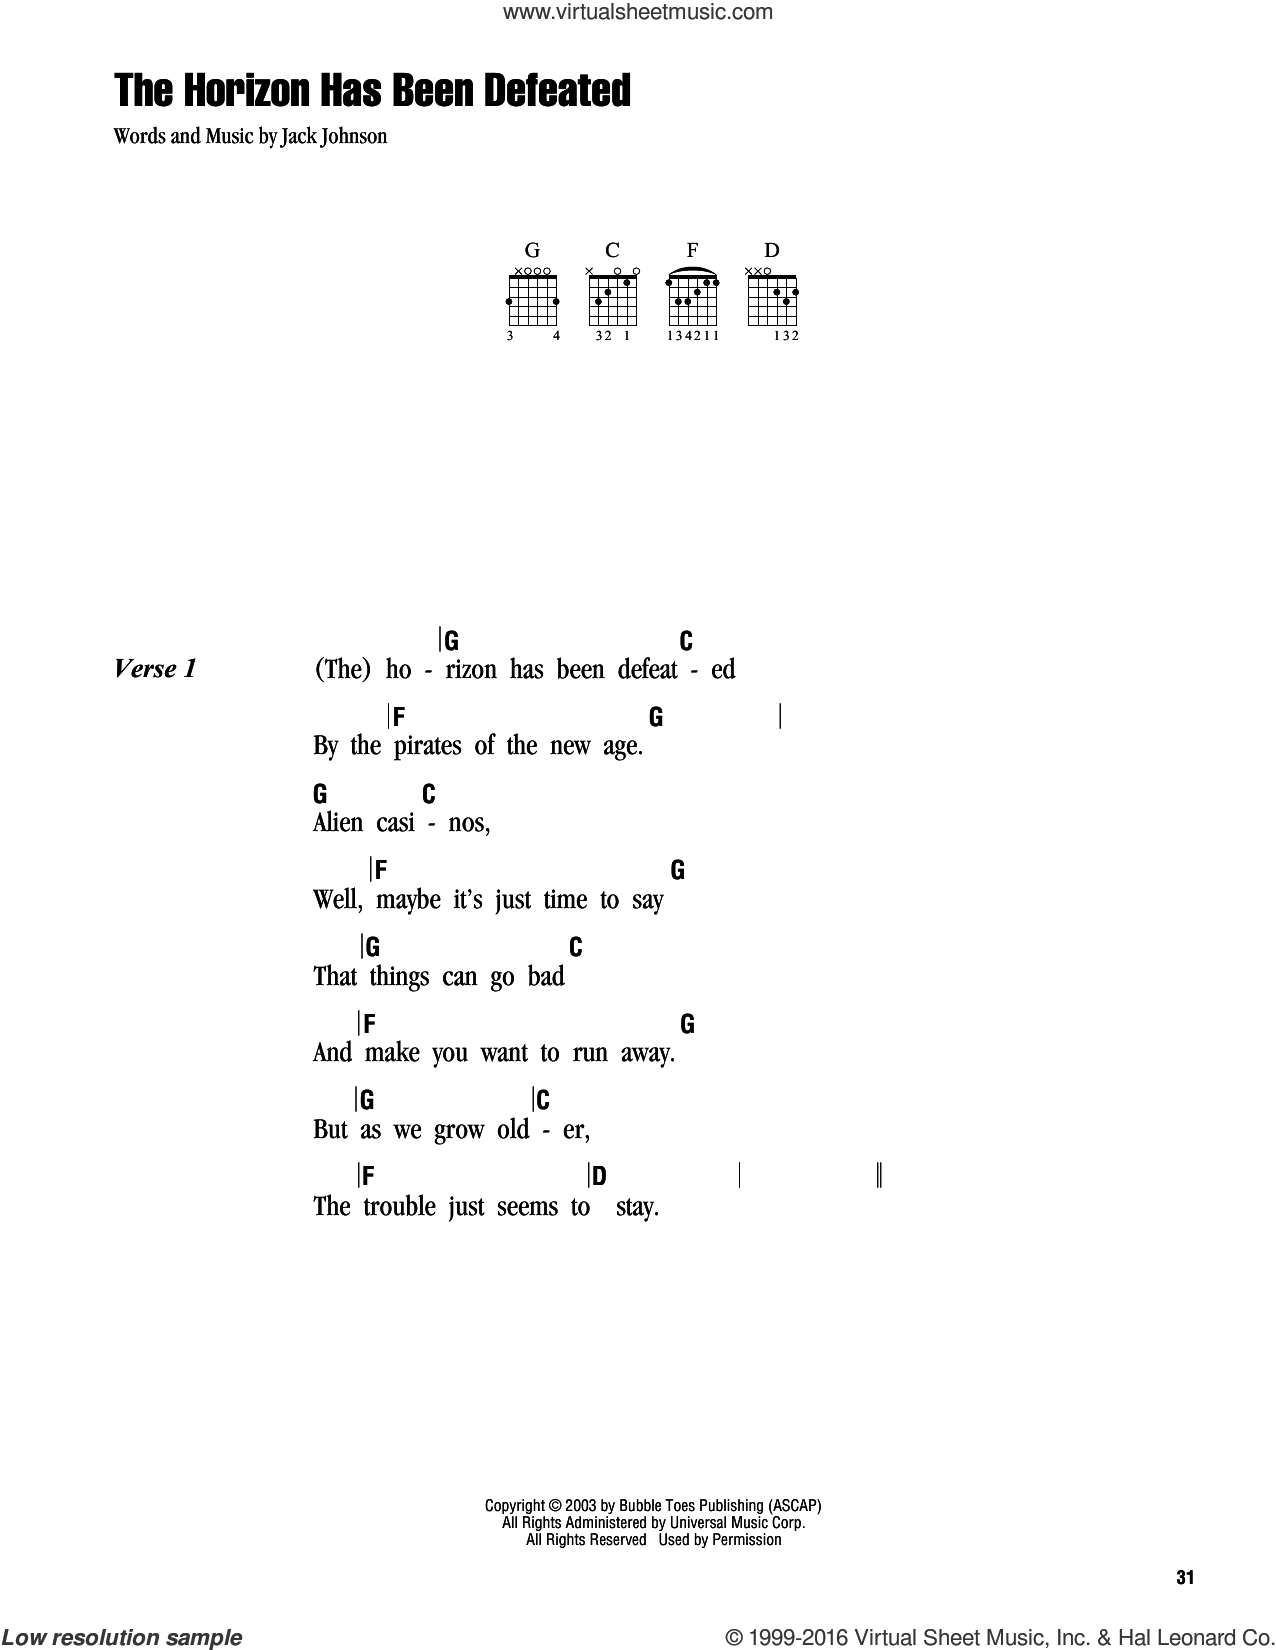 The Horizon Has Been Defeated sheet music for guitar (chords) by Jack Johnson. Score Image Preview.